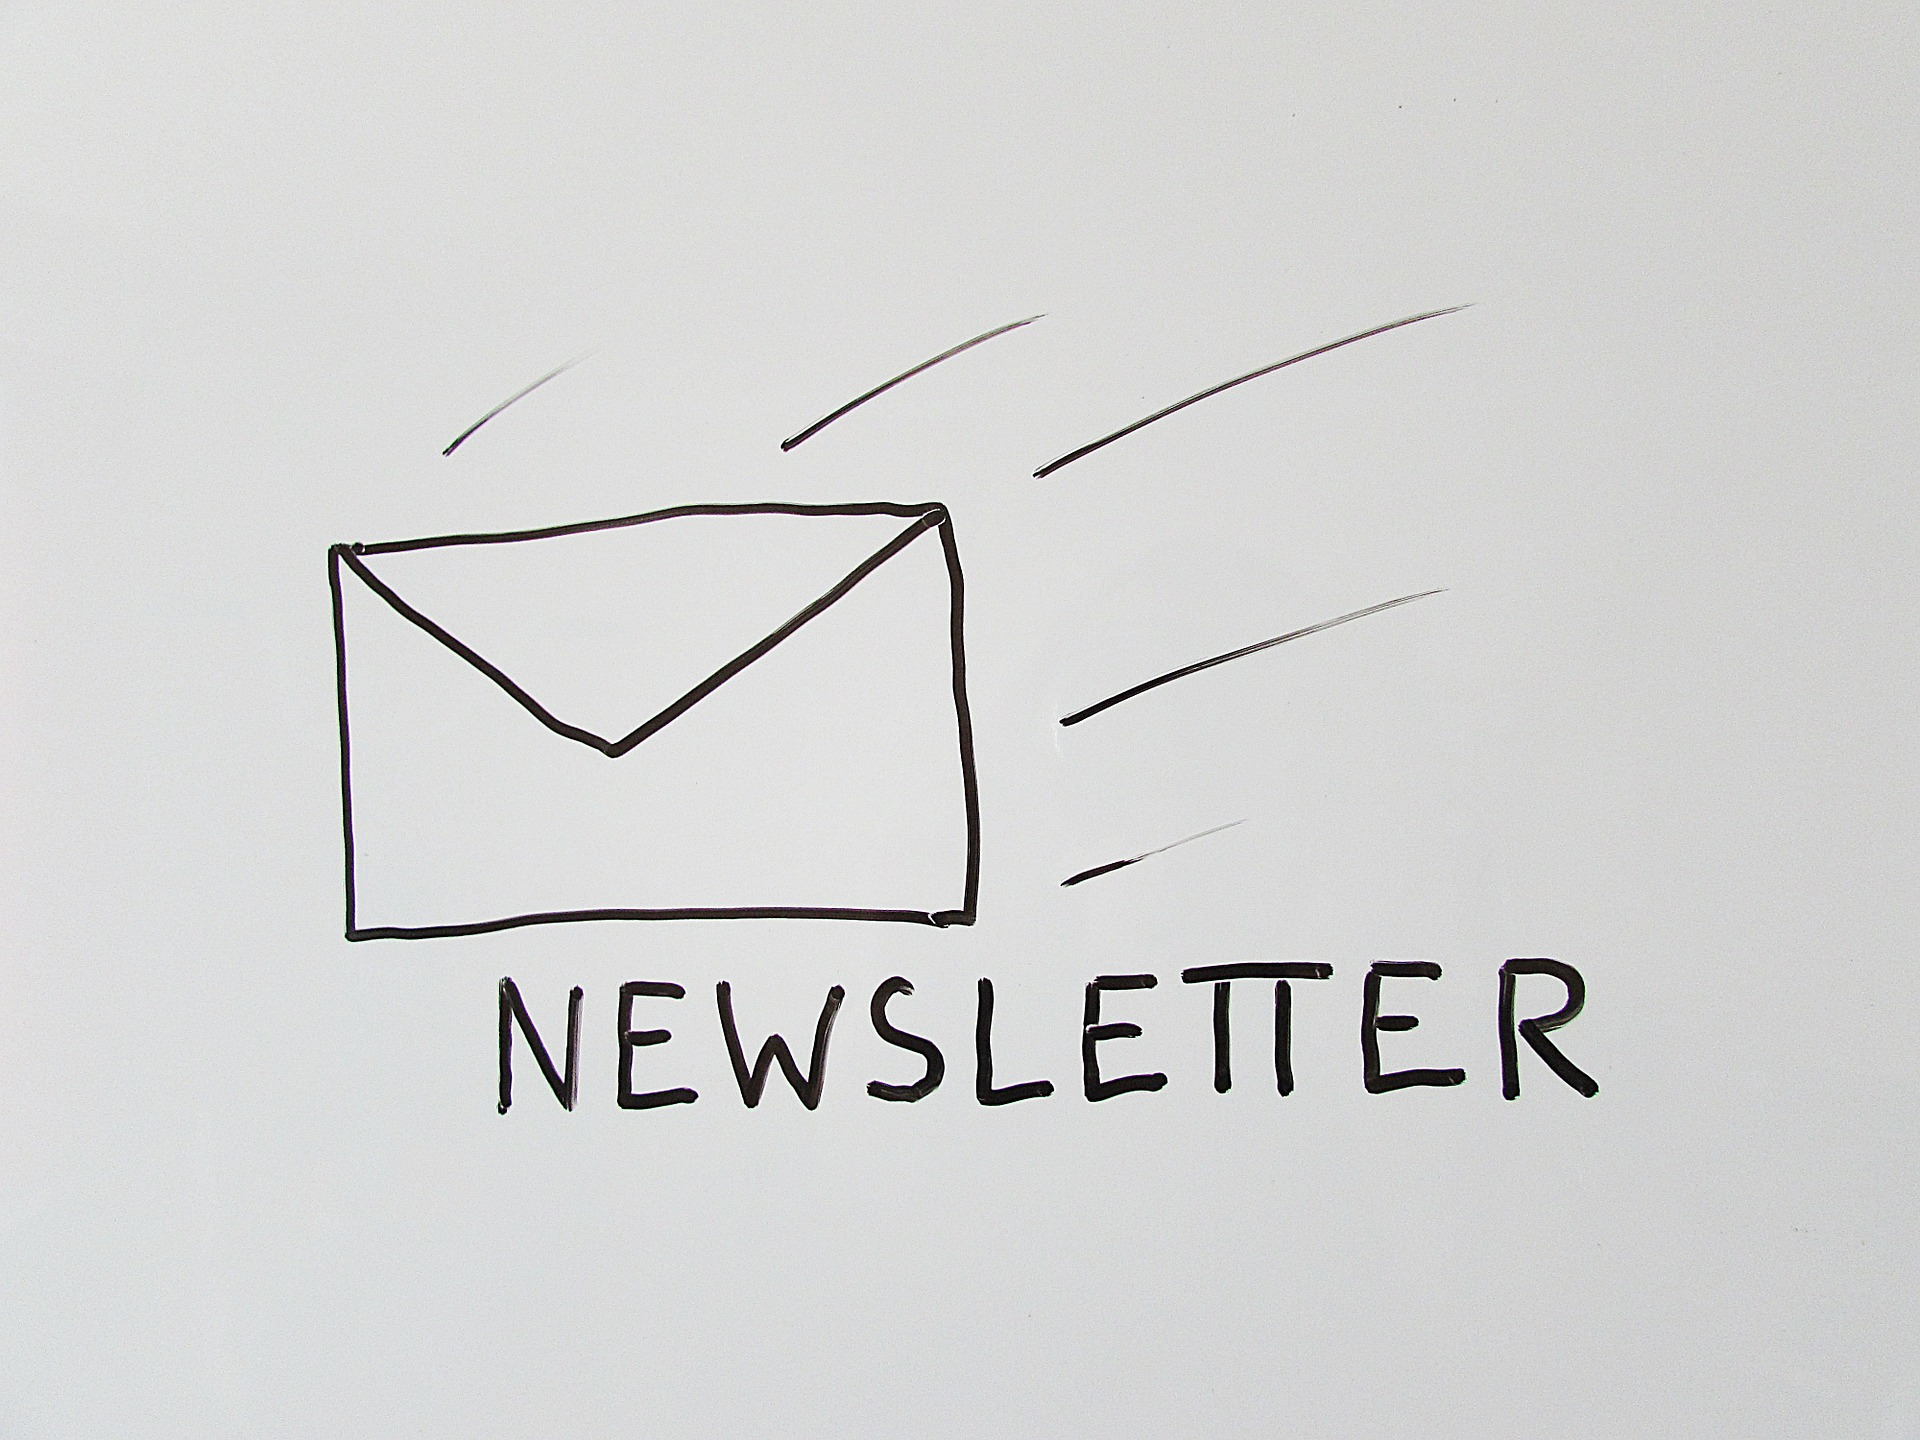 SEO a newsletter